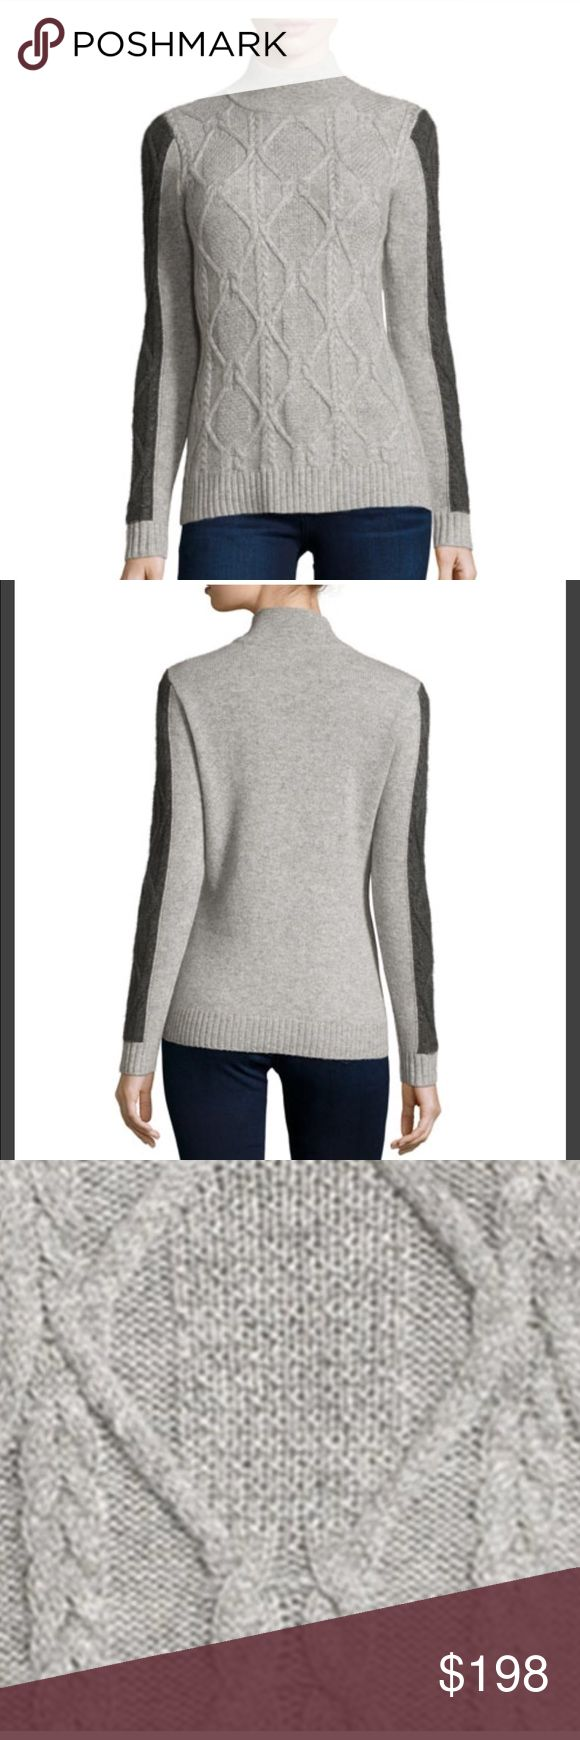 NEIMEN MARCUS CASHMERE SWEATER XL Absolutely gorgeous sweater in Heather Gray with Black sleeve Side arm panels from NEIMEN Marcus - XL Neiman Marcus Sweaters Cowl & Turtlenecks